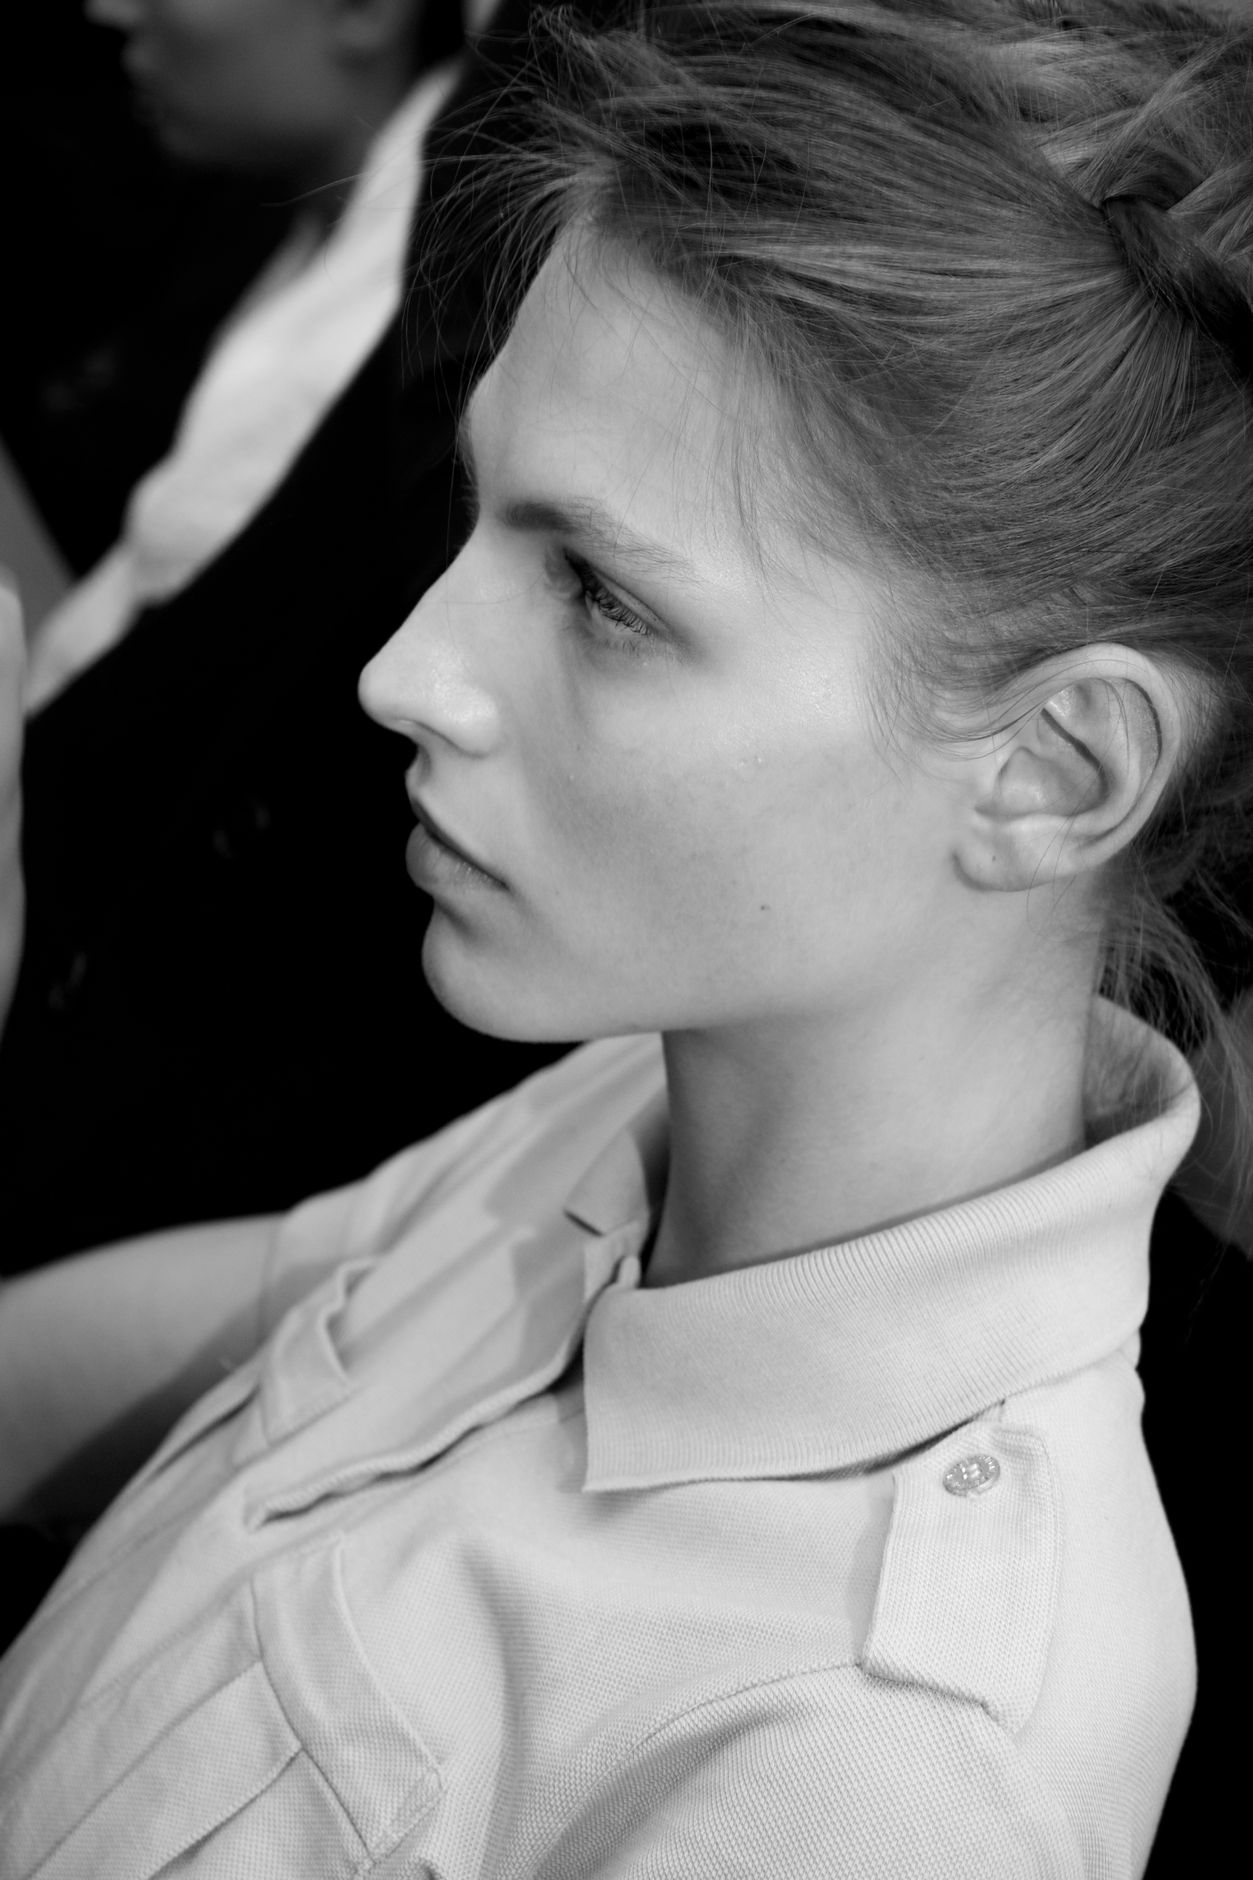 Backstage Jo No Fui SS 2013